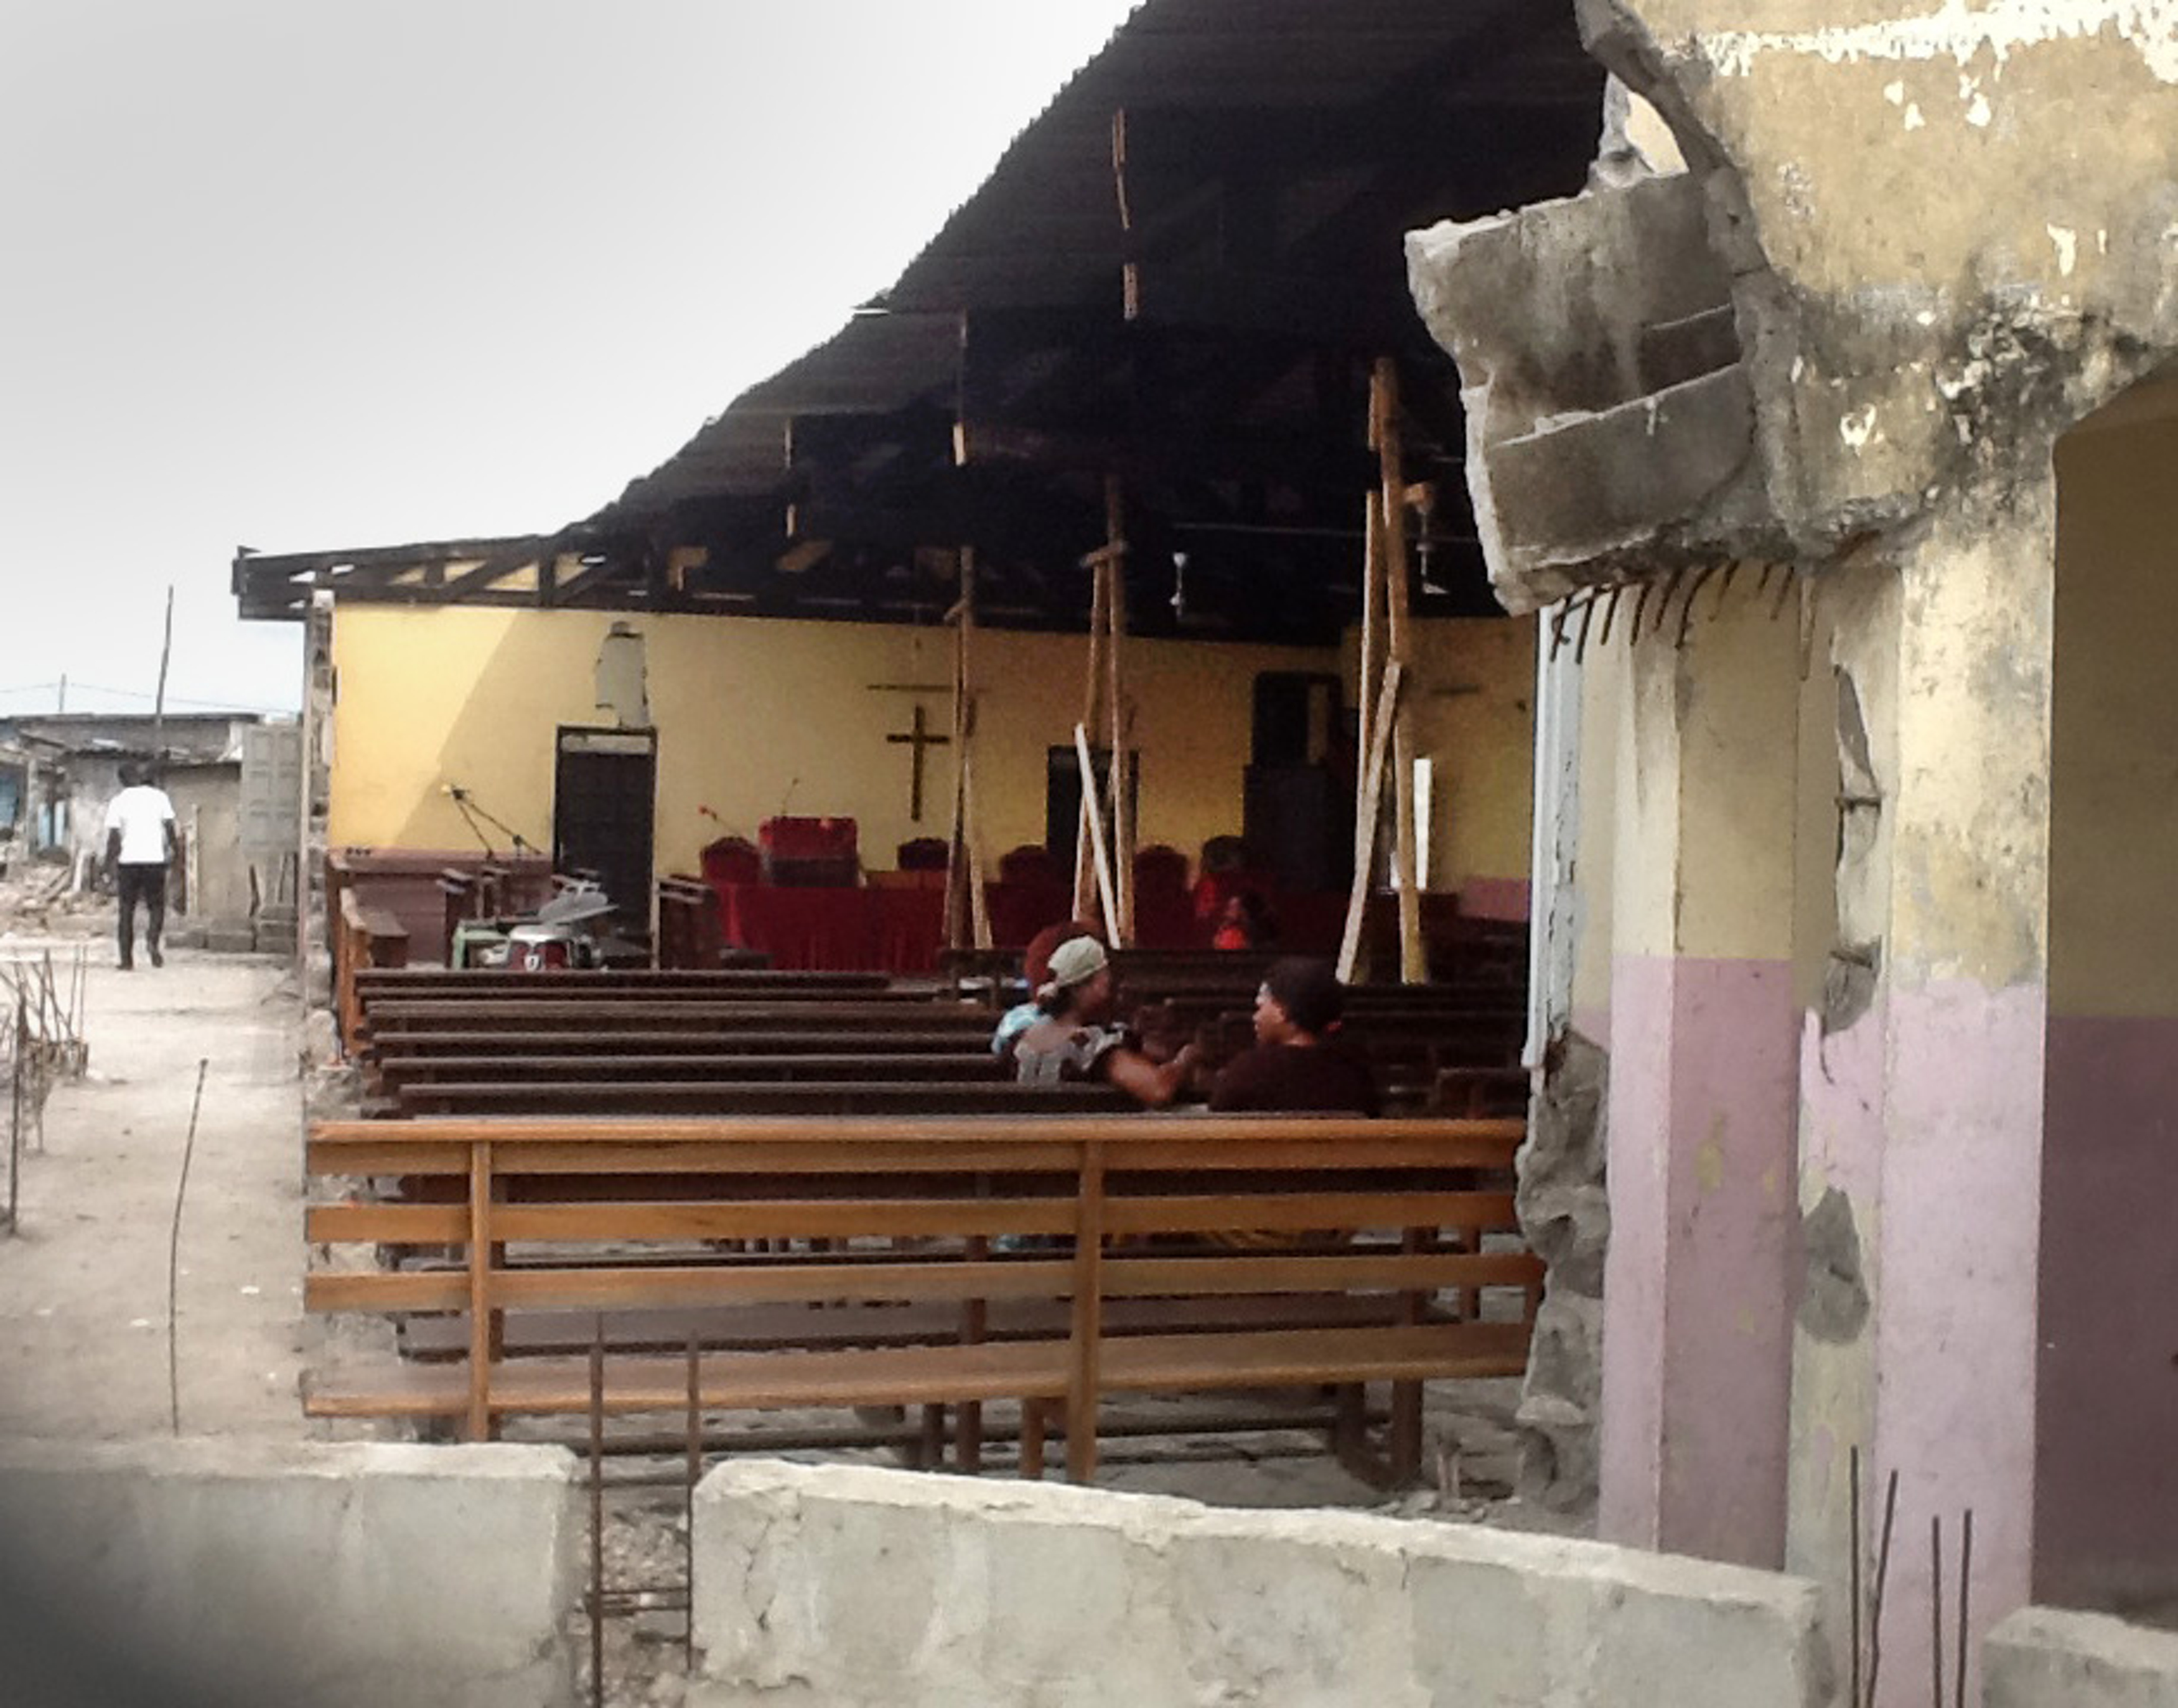 Another view of damage to the church. Photo by Isaac Broune, UMNS